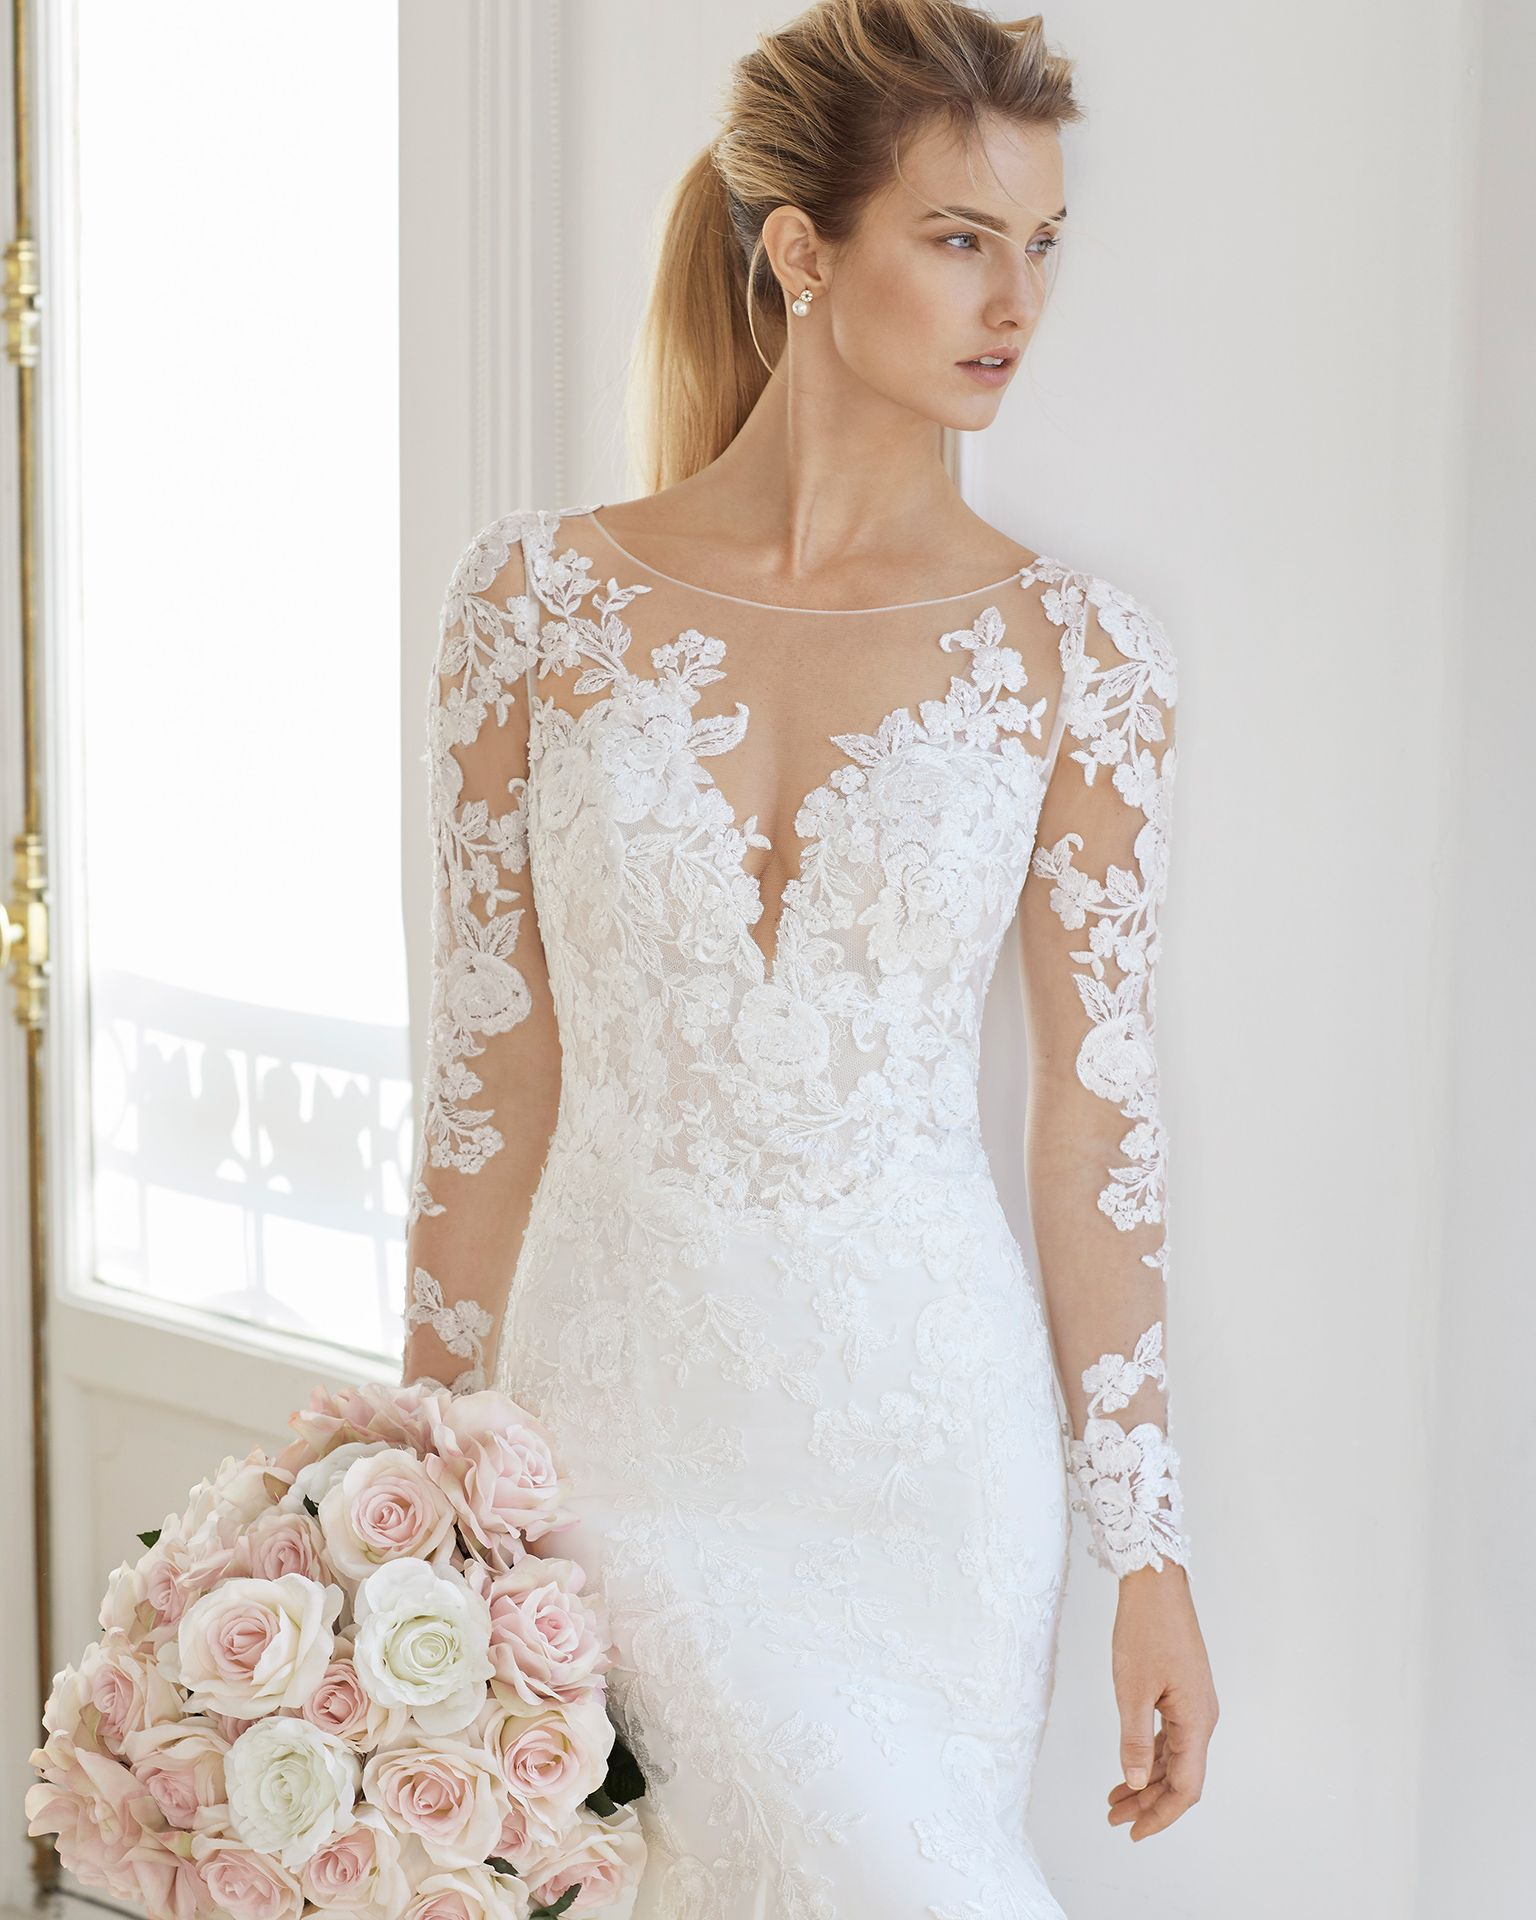 1860e1646886 Mermaid-style wedding dress in crepe Georgette and beaded lace. Illusion  neckline and long sleeves. Available in natural. 2019 AIRE BARCELONA  Collection.